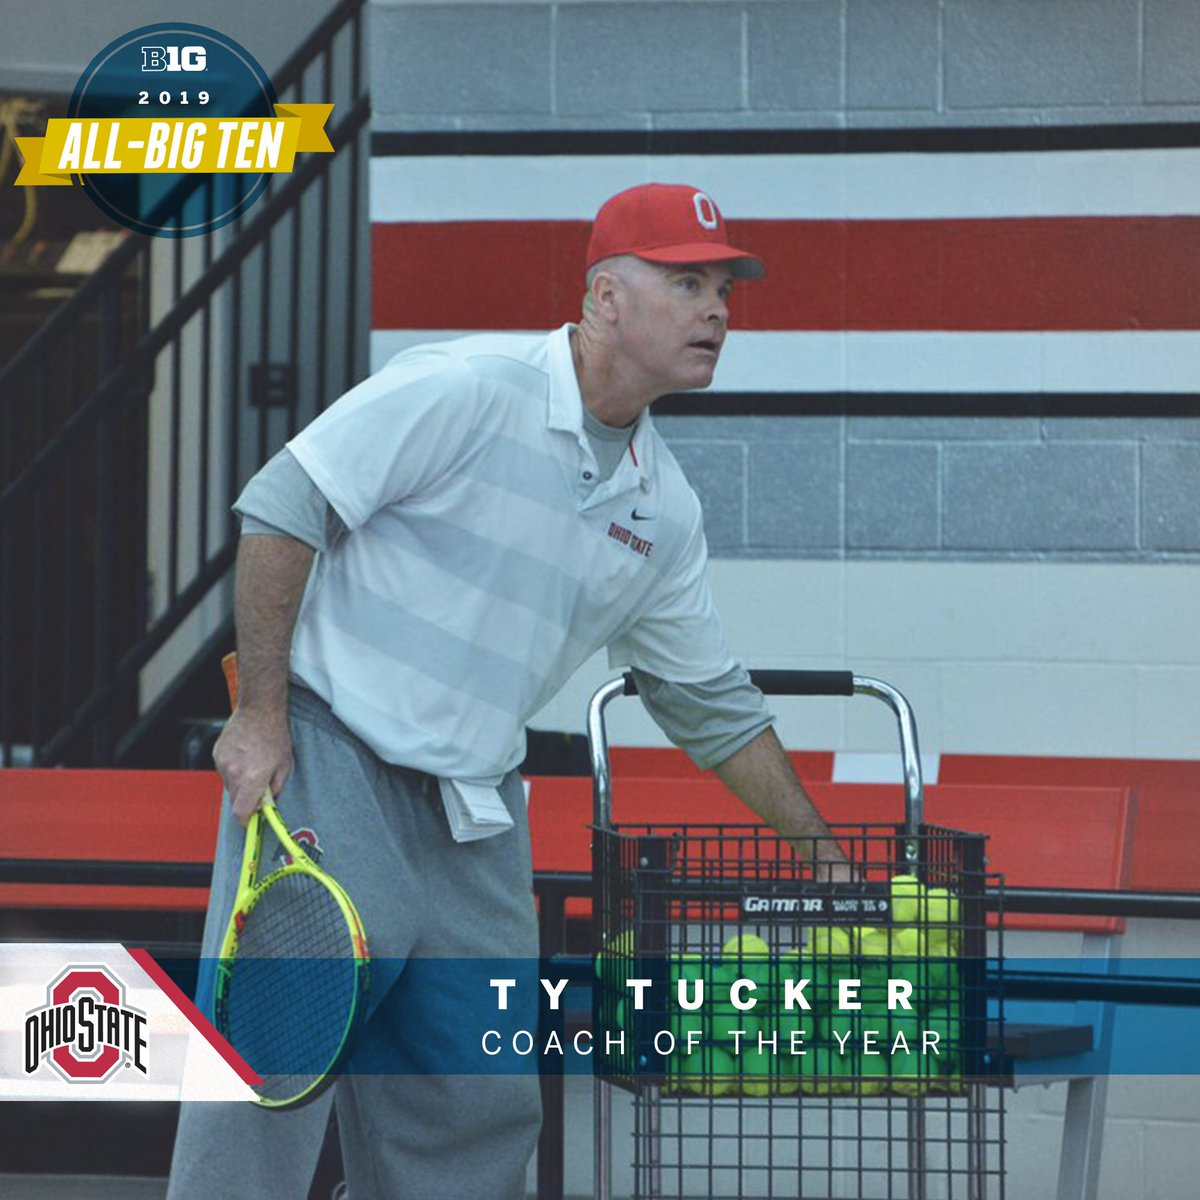 Ty Tucker of @OhioStateMTEN named 2019 #B1GMTennis Coach of the Year.